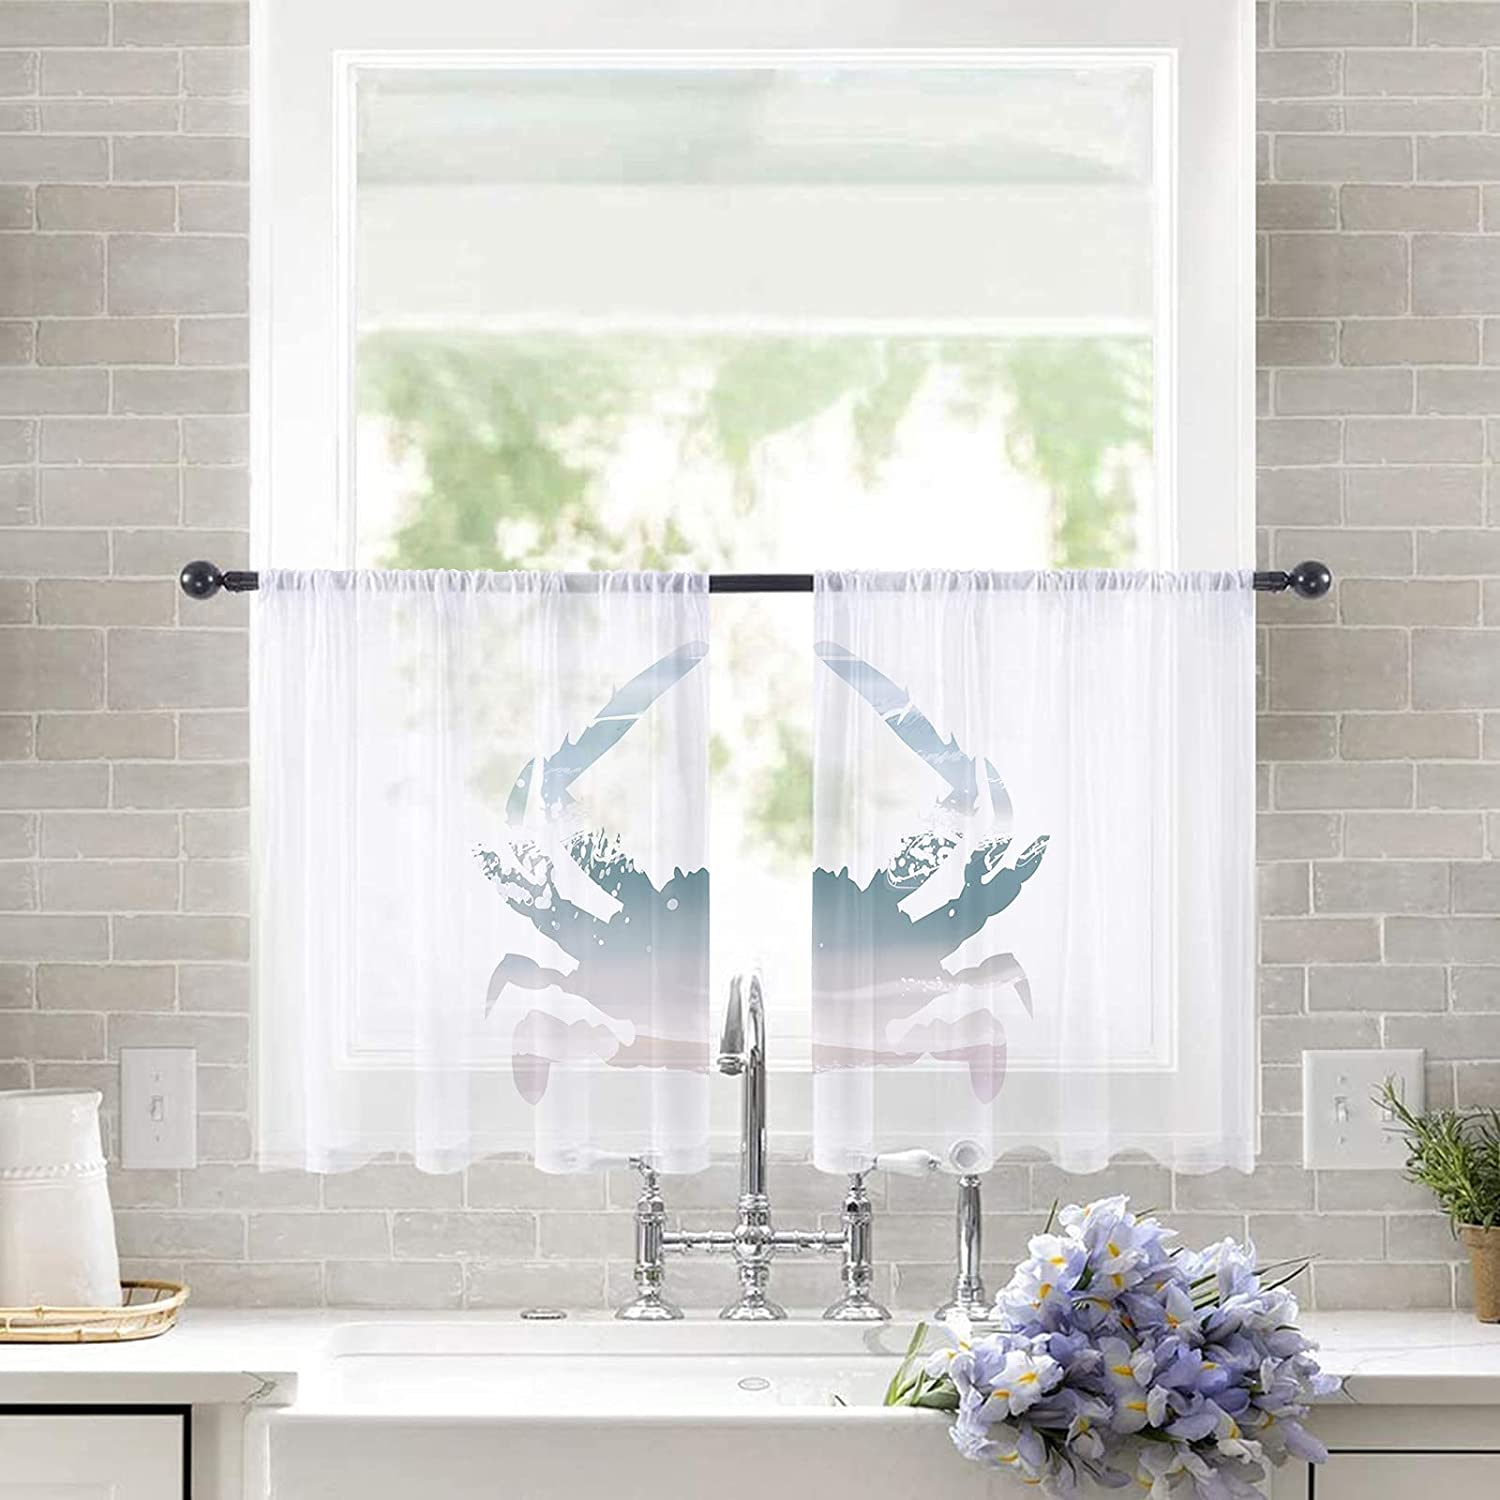 2pc Import Set Sheer Curtains for Bedroom Rod Windows Beach Inventory cleanup selling sale Pocket Cur